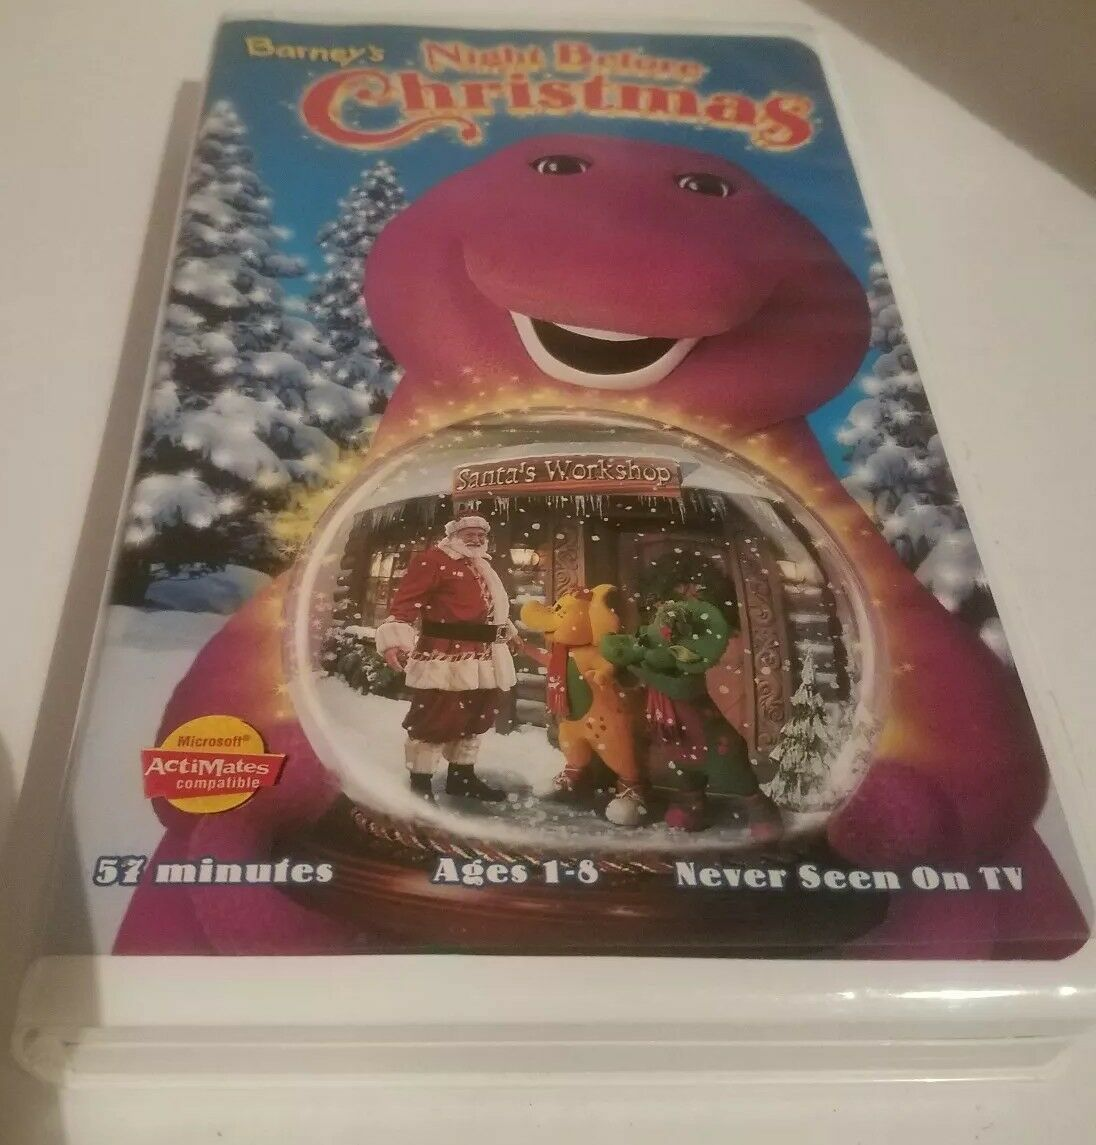 BARNEYS NIGHT BEFORE Christmas (VHS, 1999) - $5.99 | PicClick